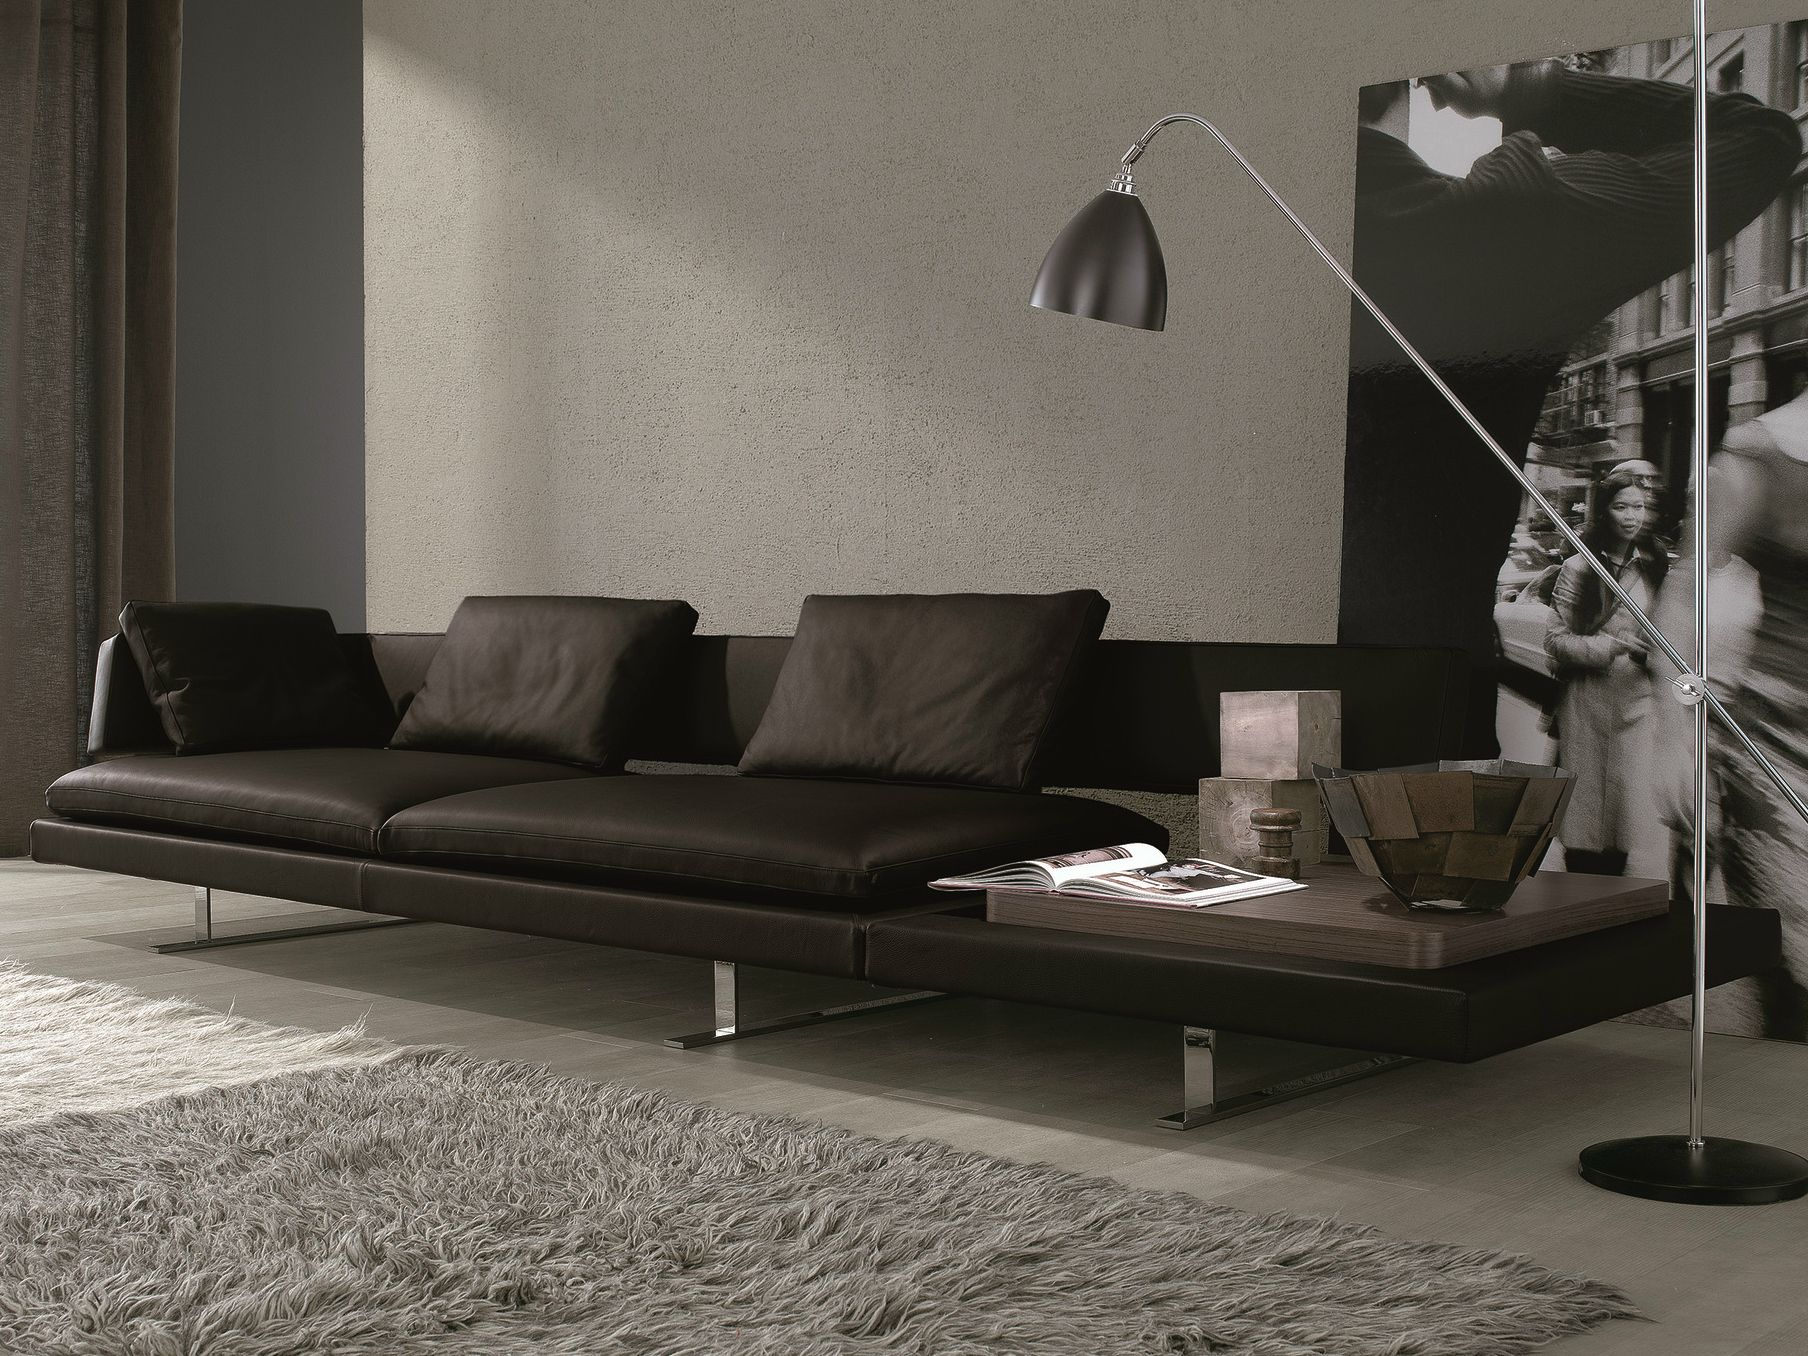 Leather Sofa Bymauro Lipparini